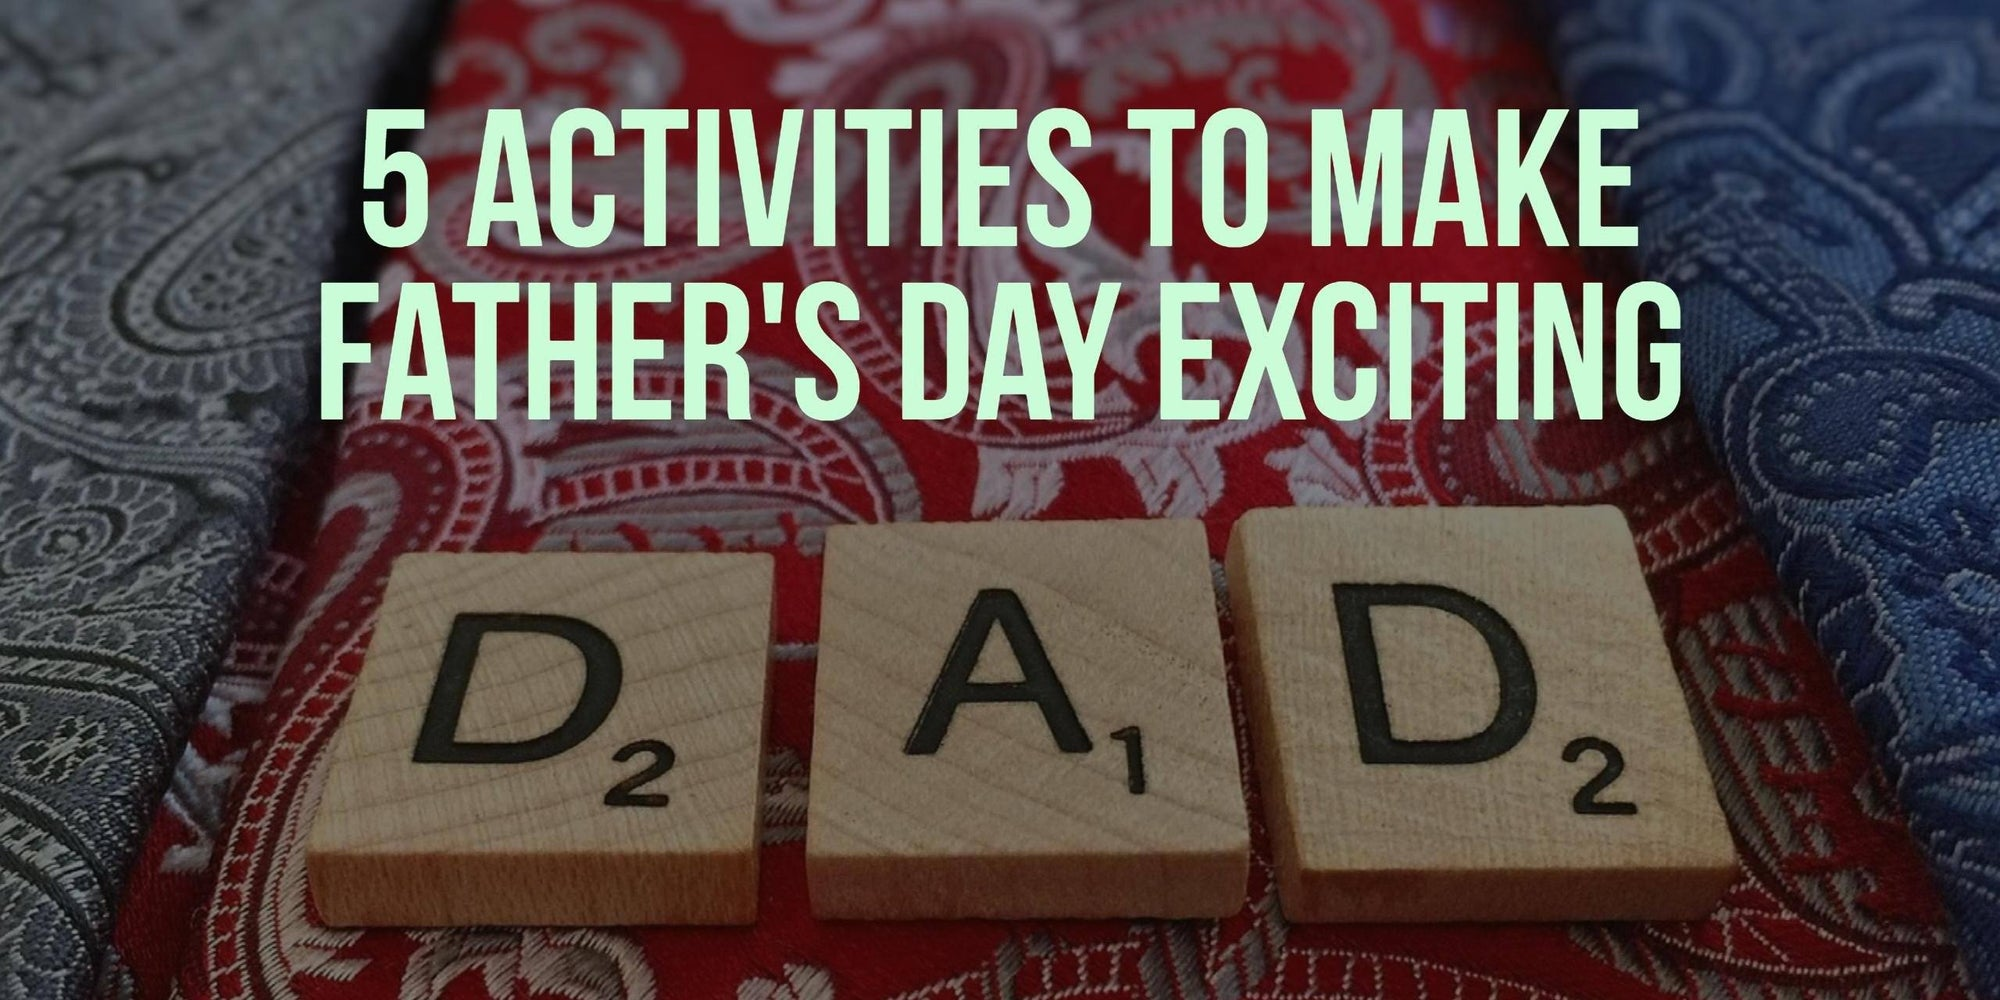 Activities to Make Father's Day Exciting